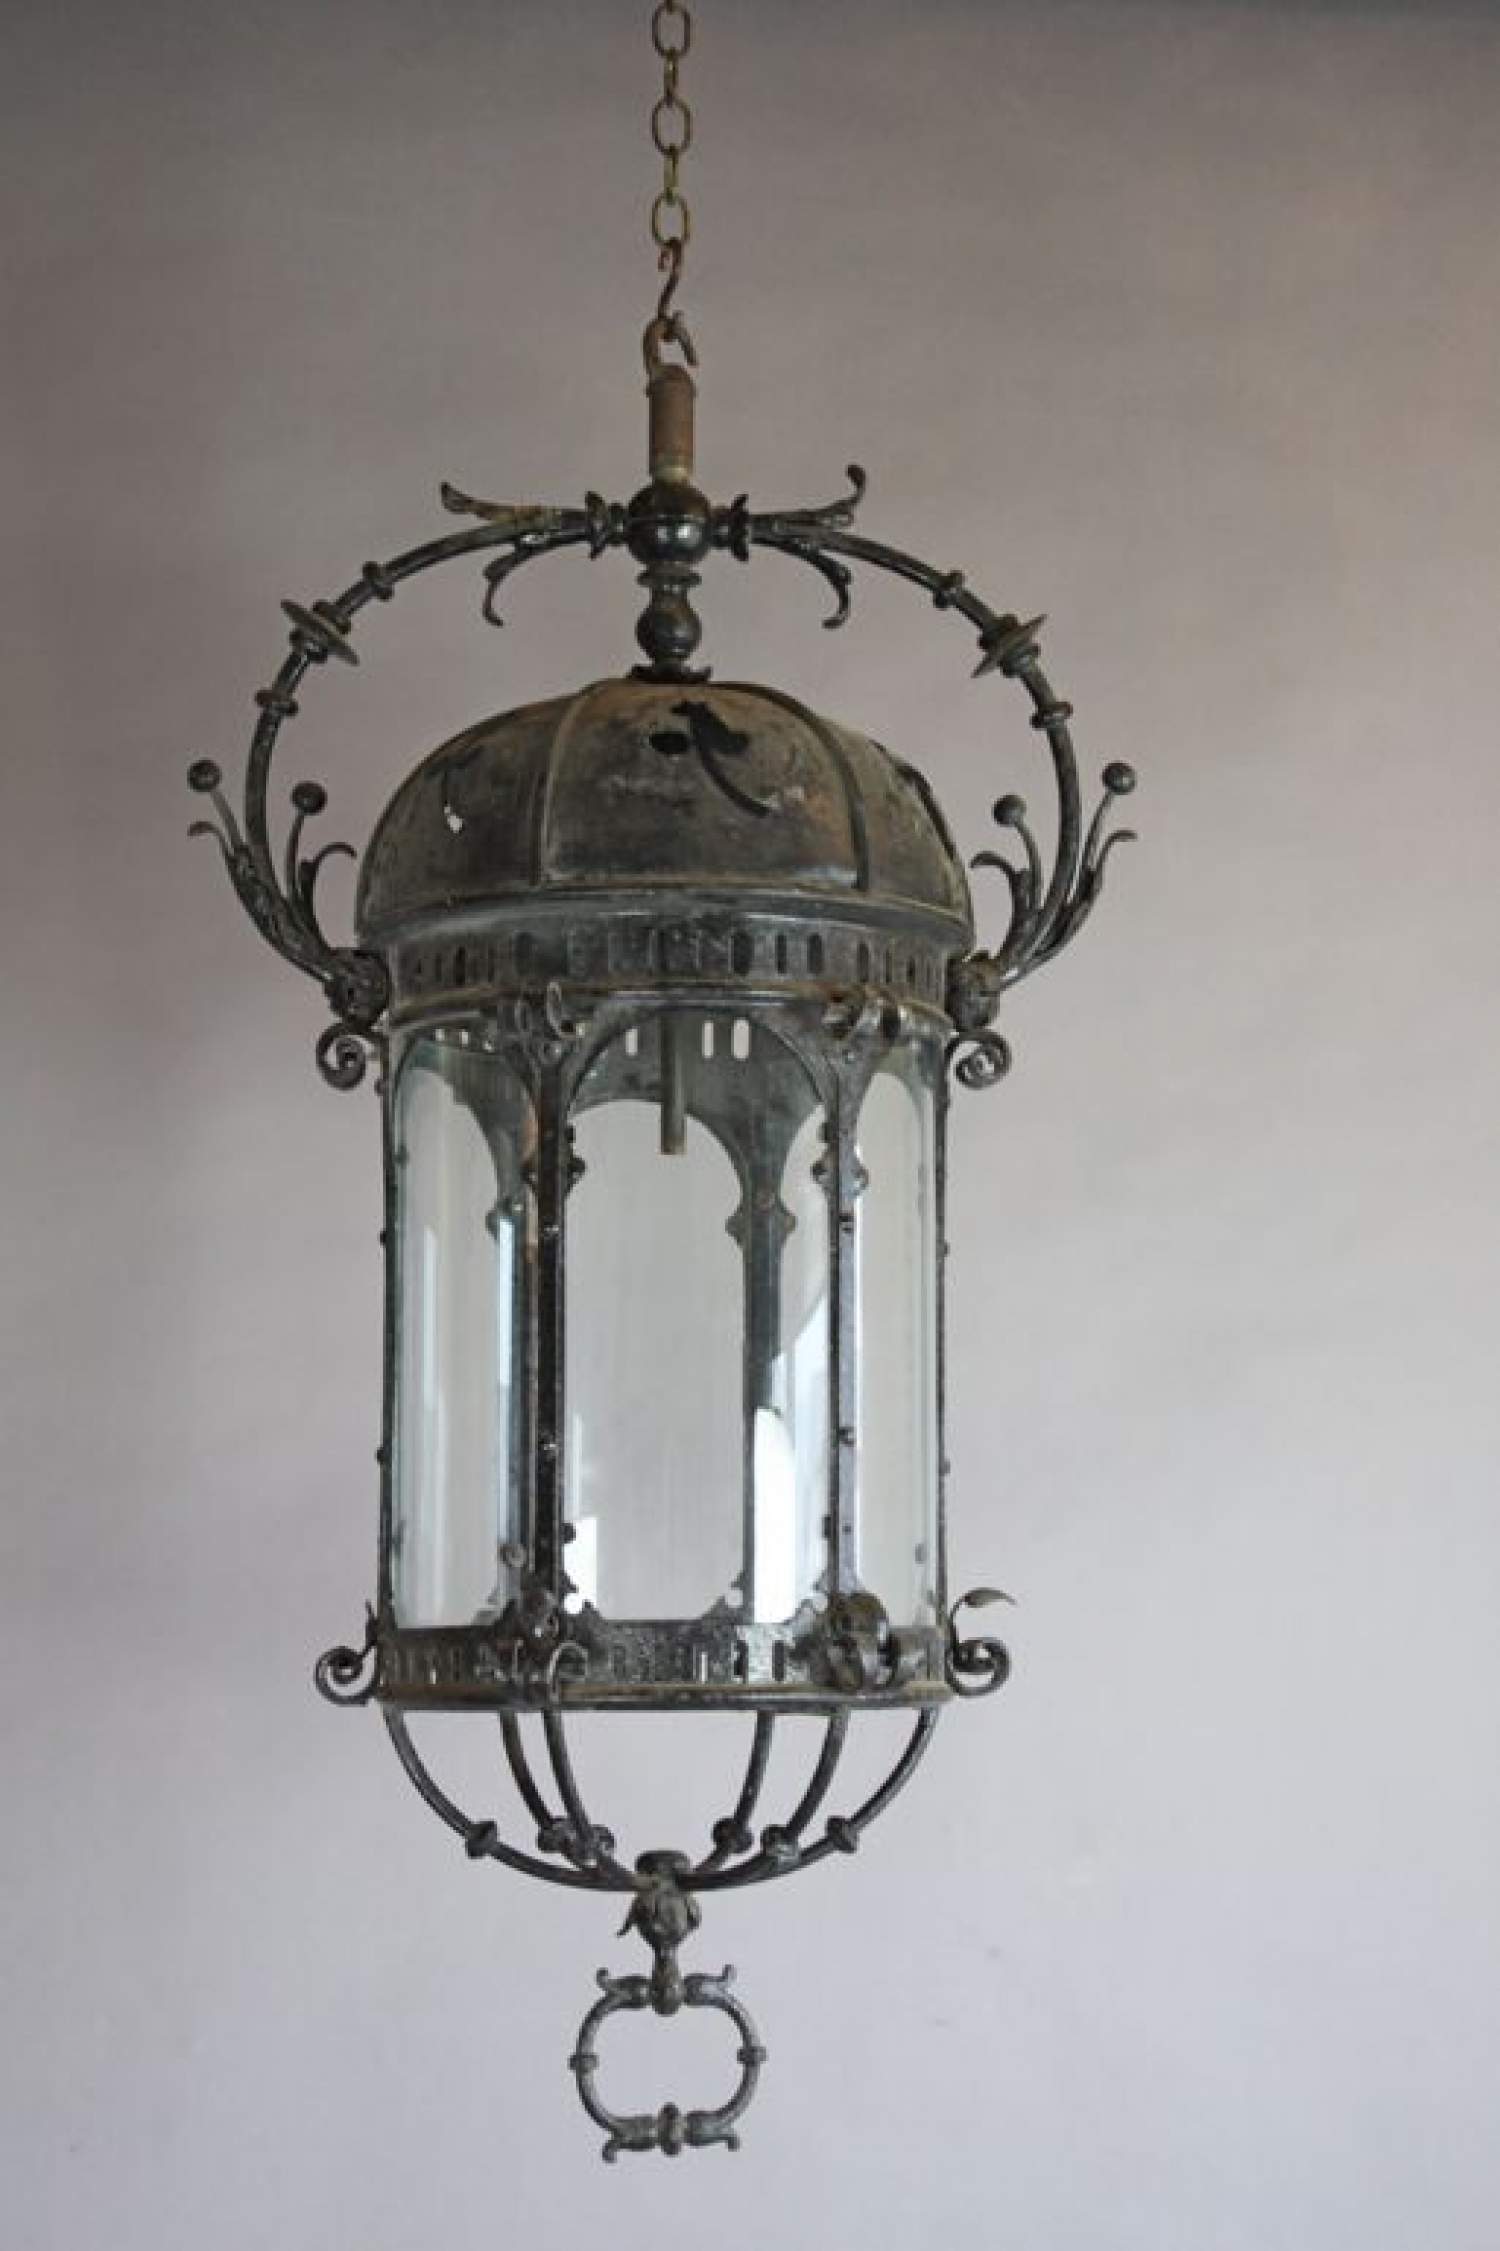 Wall Lights In Conservatory : CONSERVATORY LIGHTING Norfolk Decorative Antiques - Wall lights, LED bathroom & bedroom lighting ...